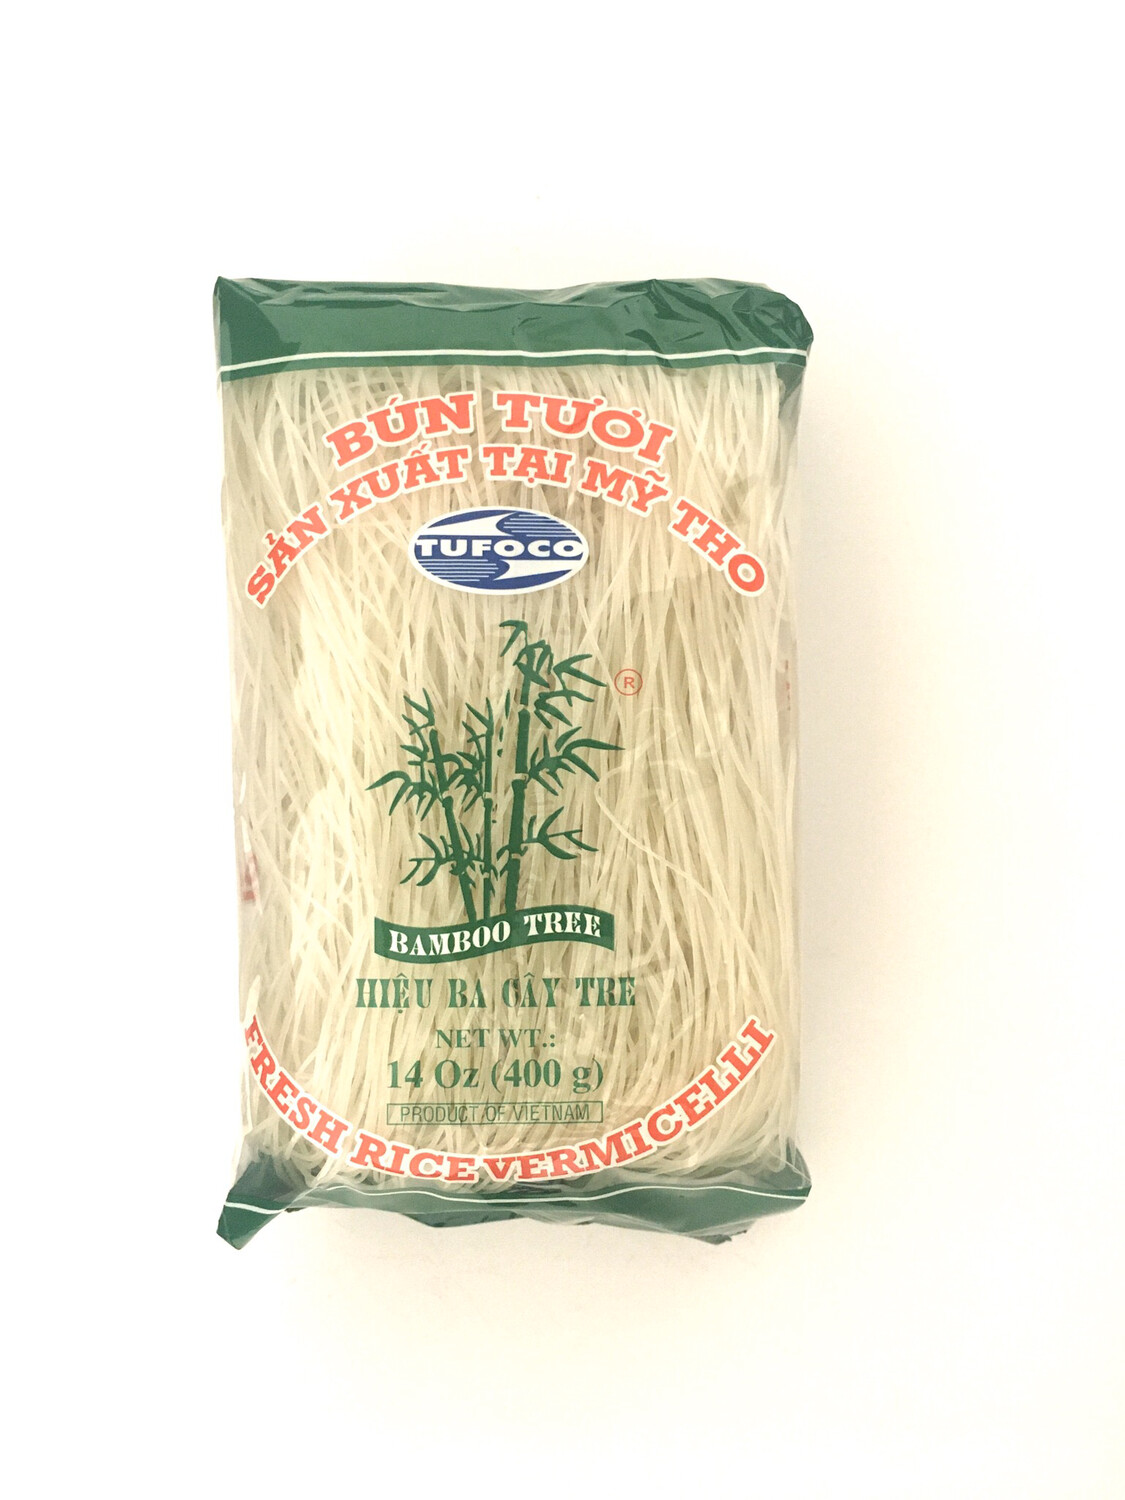 3 CAYTRE FRESH RICE VERMICELLI 30X400G